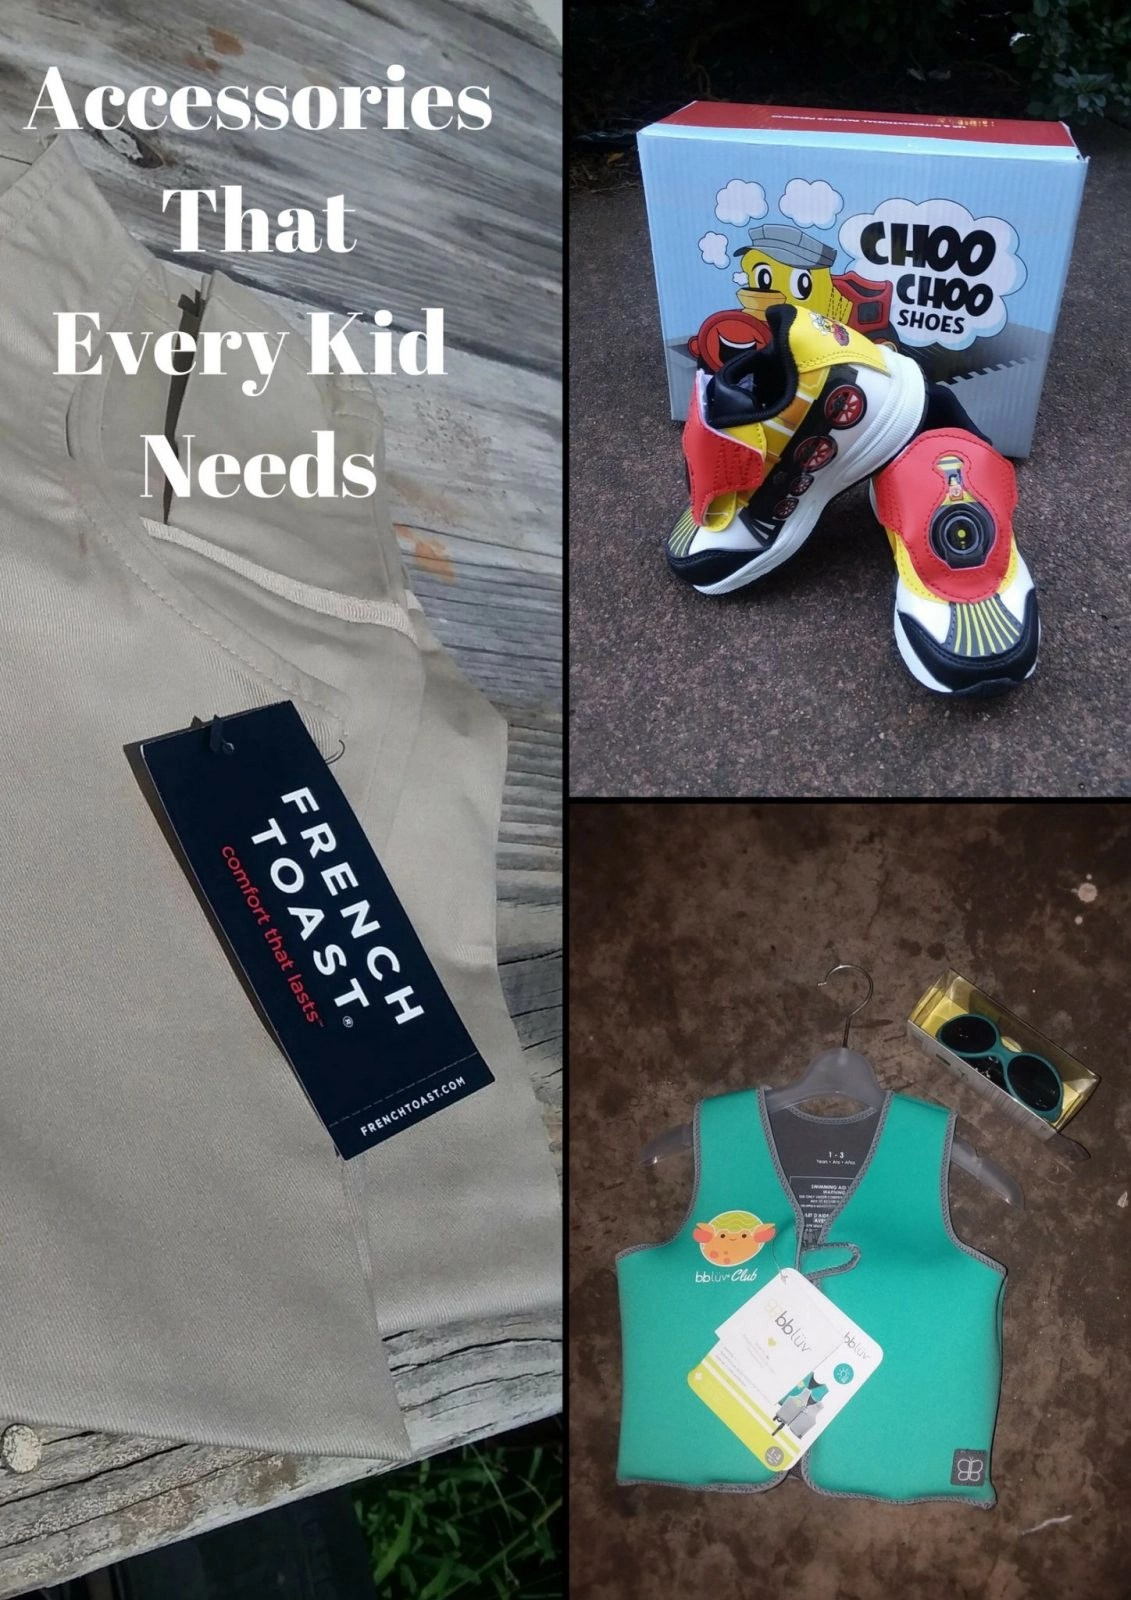 Accessories That Every Kid Needs